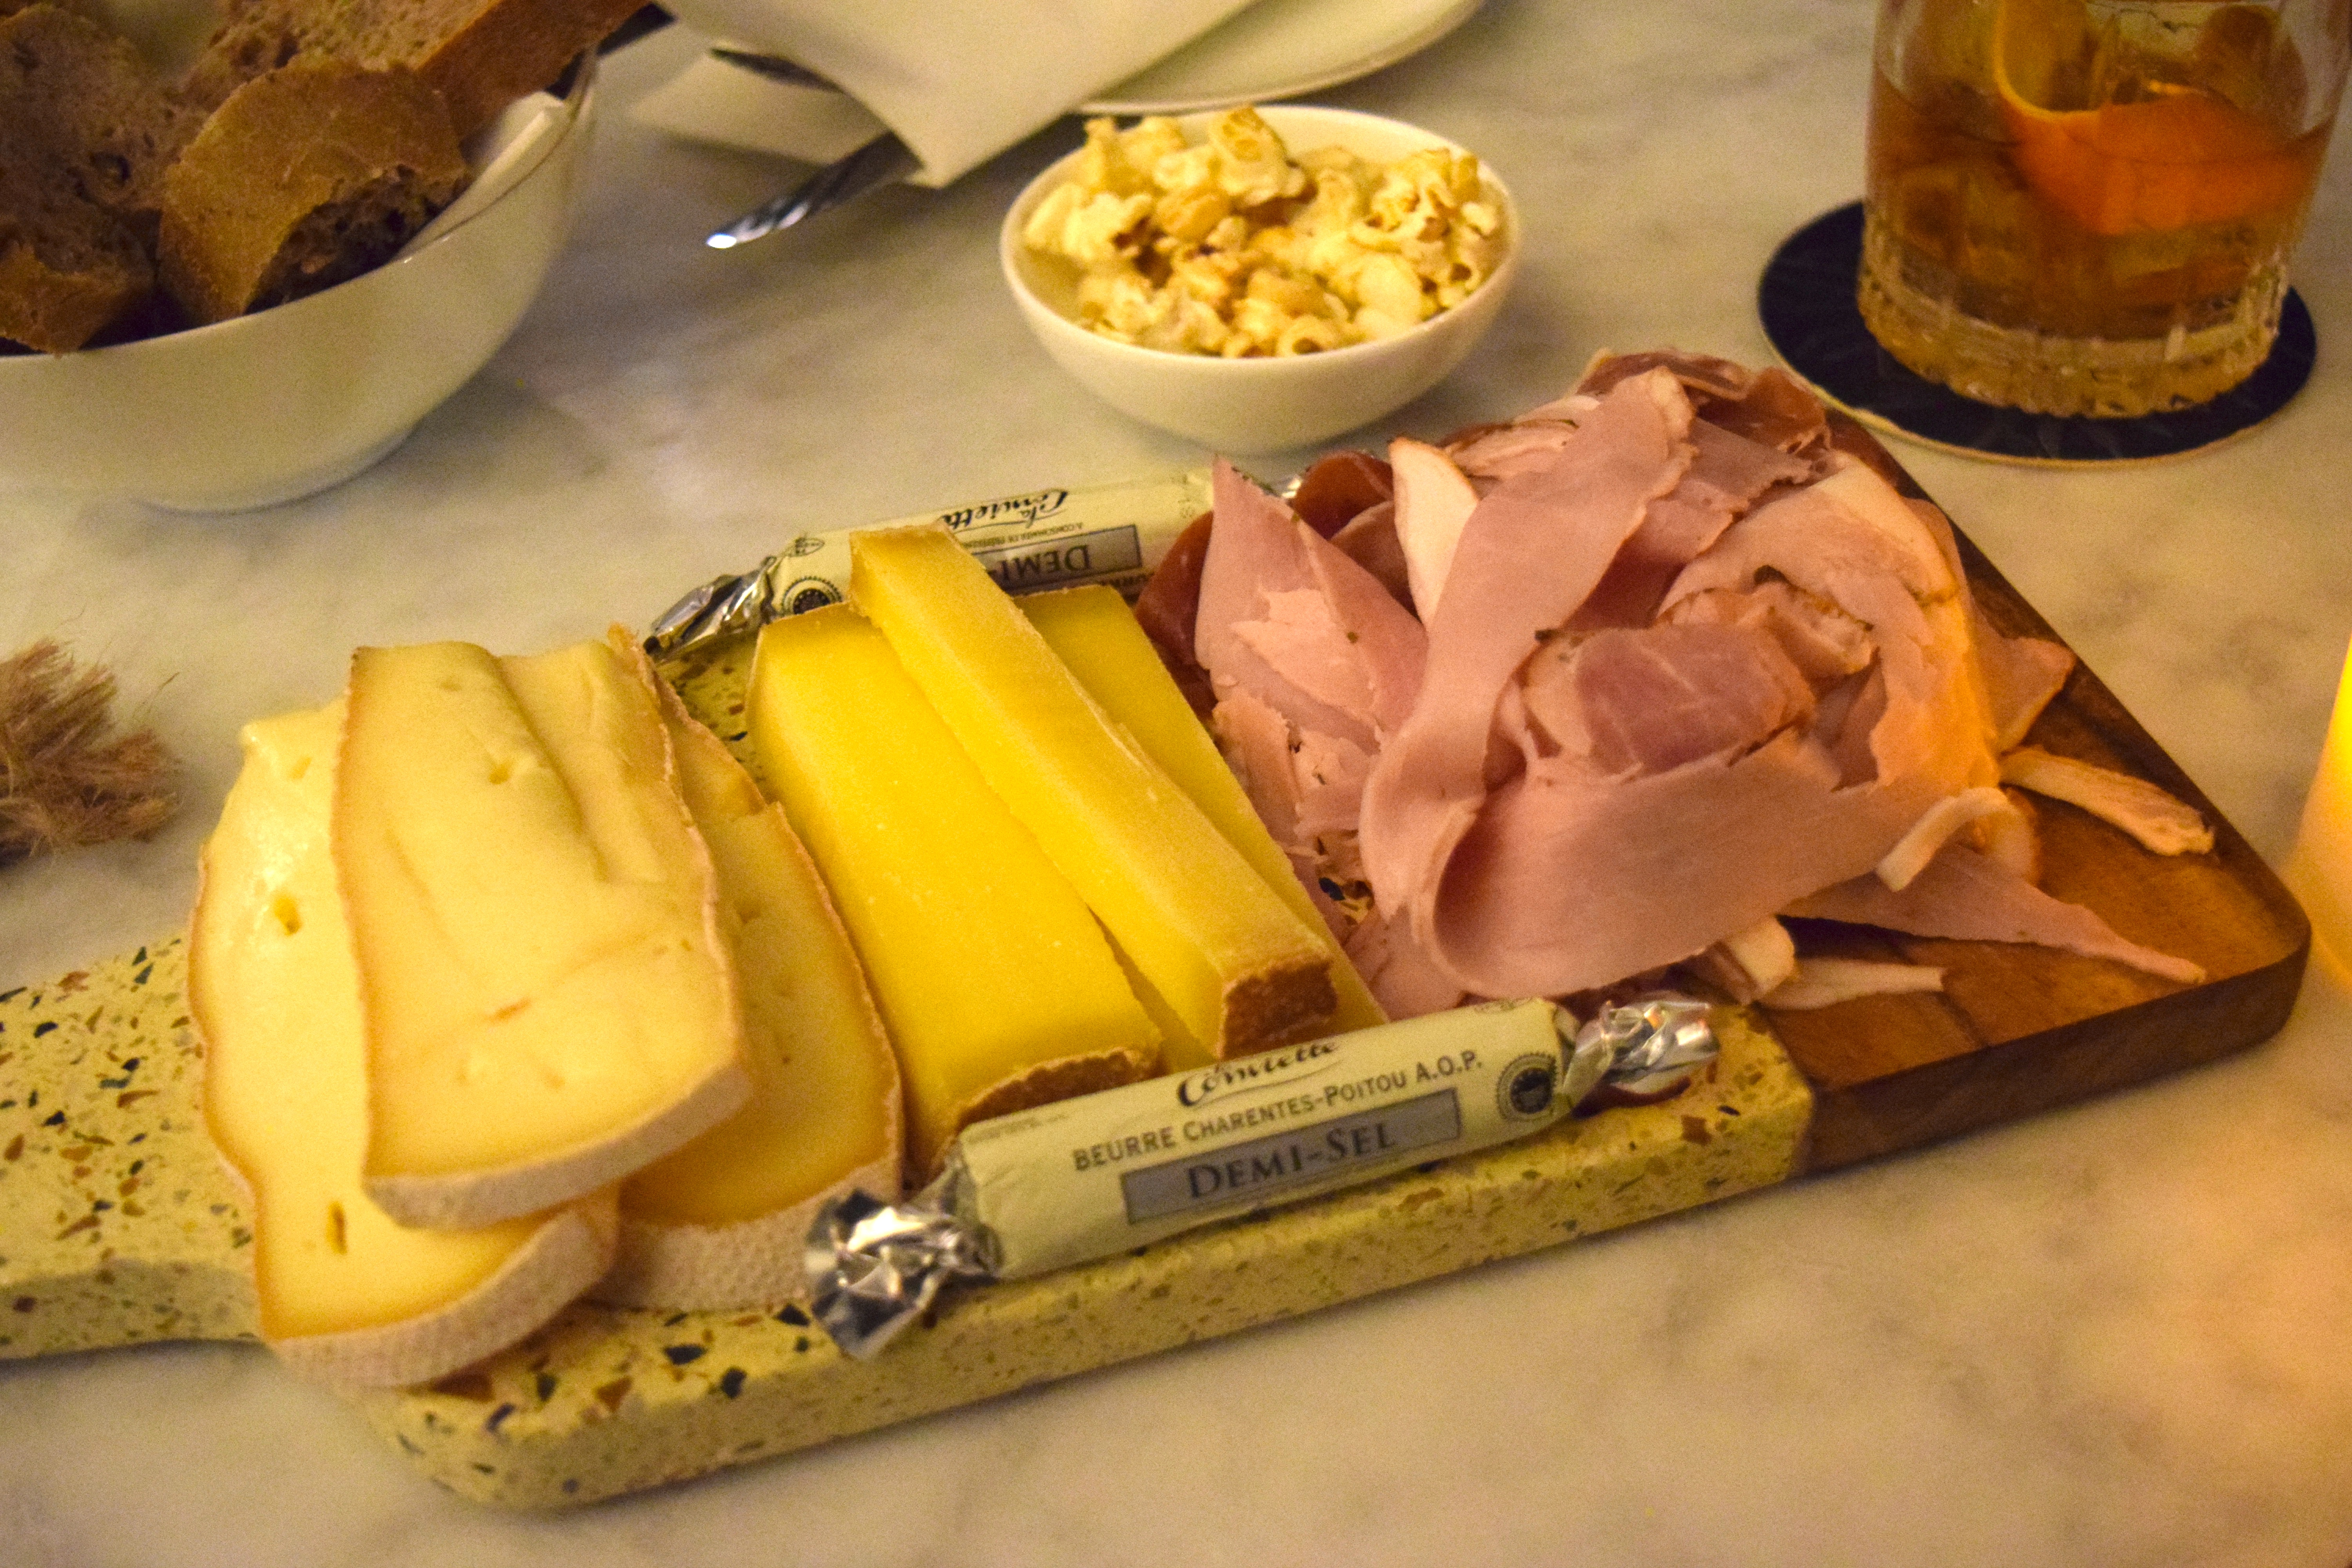 Nice meat and cheese platter for a great price!